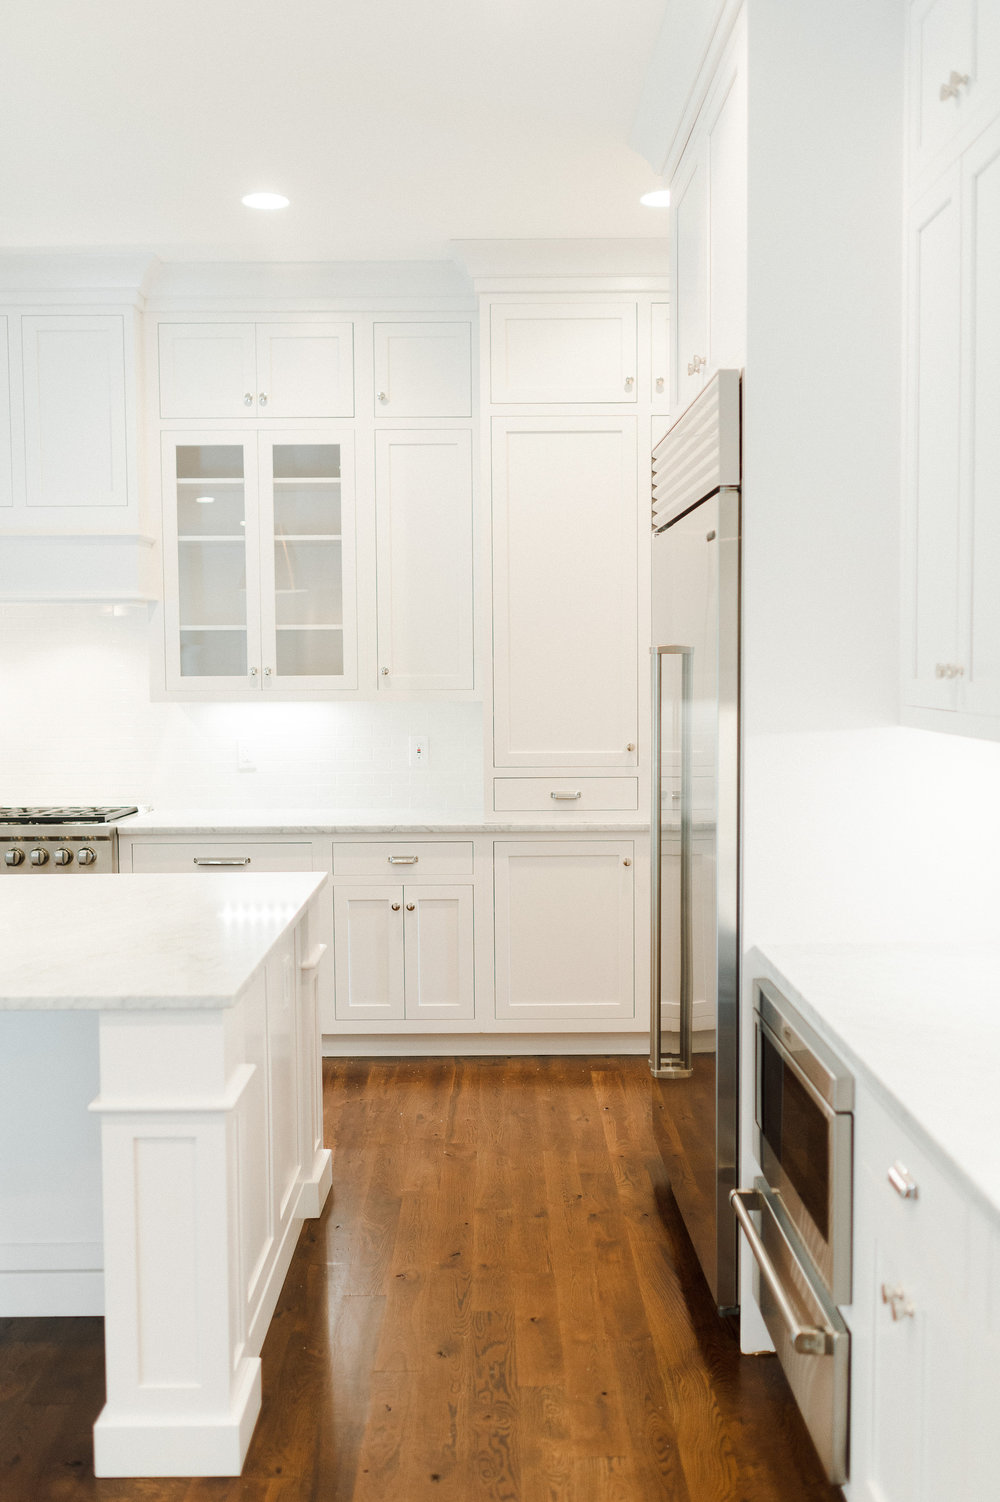 White kitchen cupboards and cabinets with stainless steel refrigerator